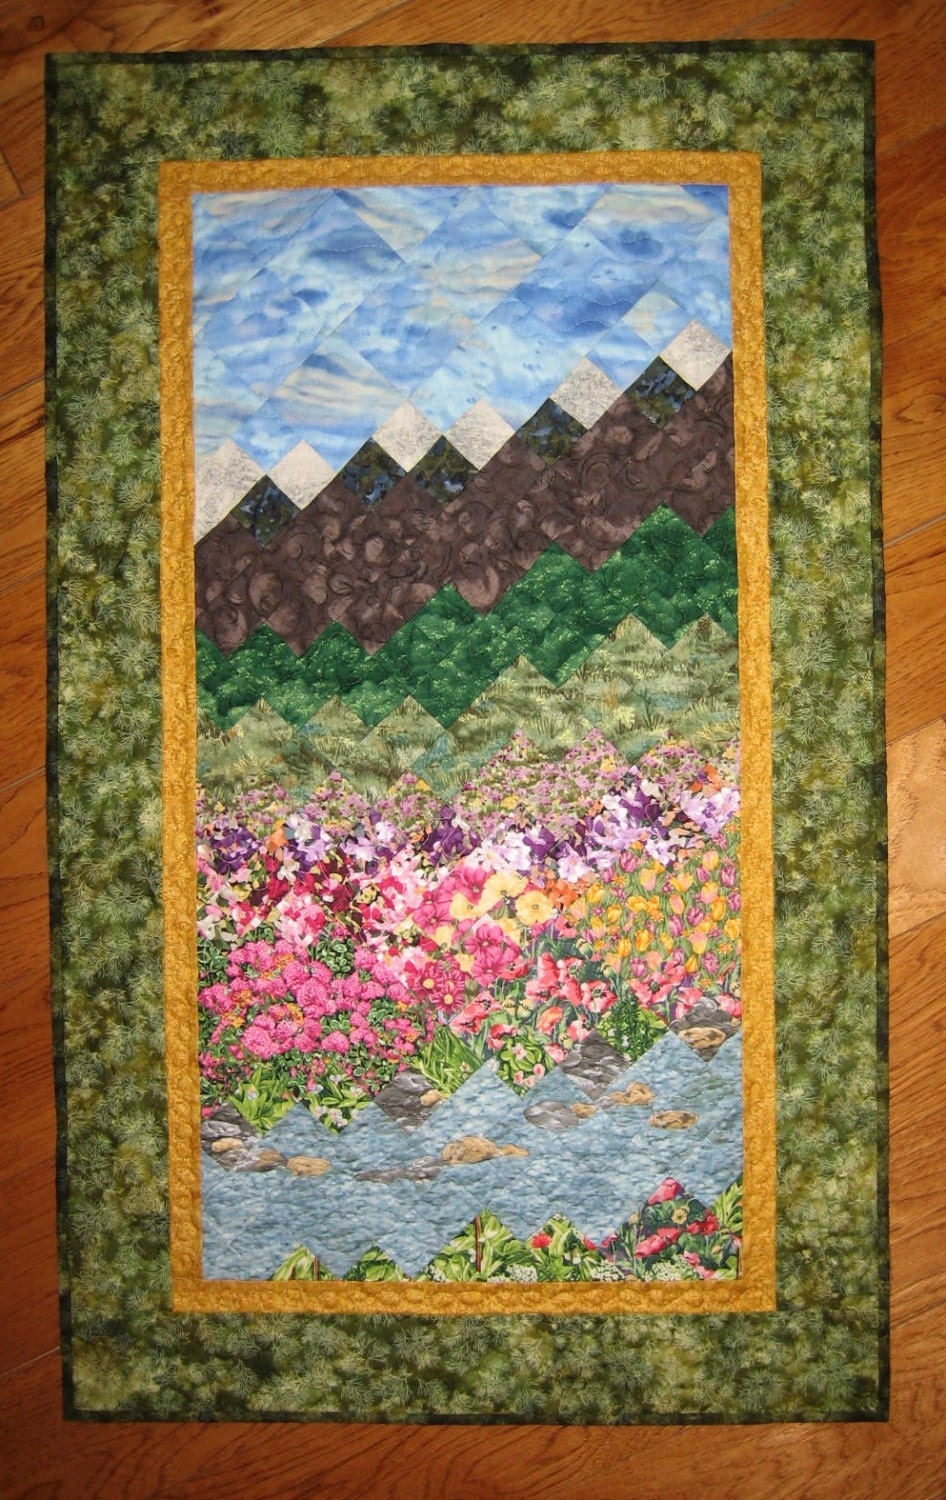 Summer Flowers Stream And Mountains Art Quilt Fabric Wall